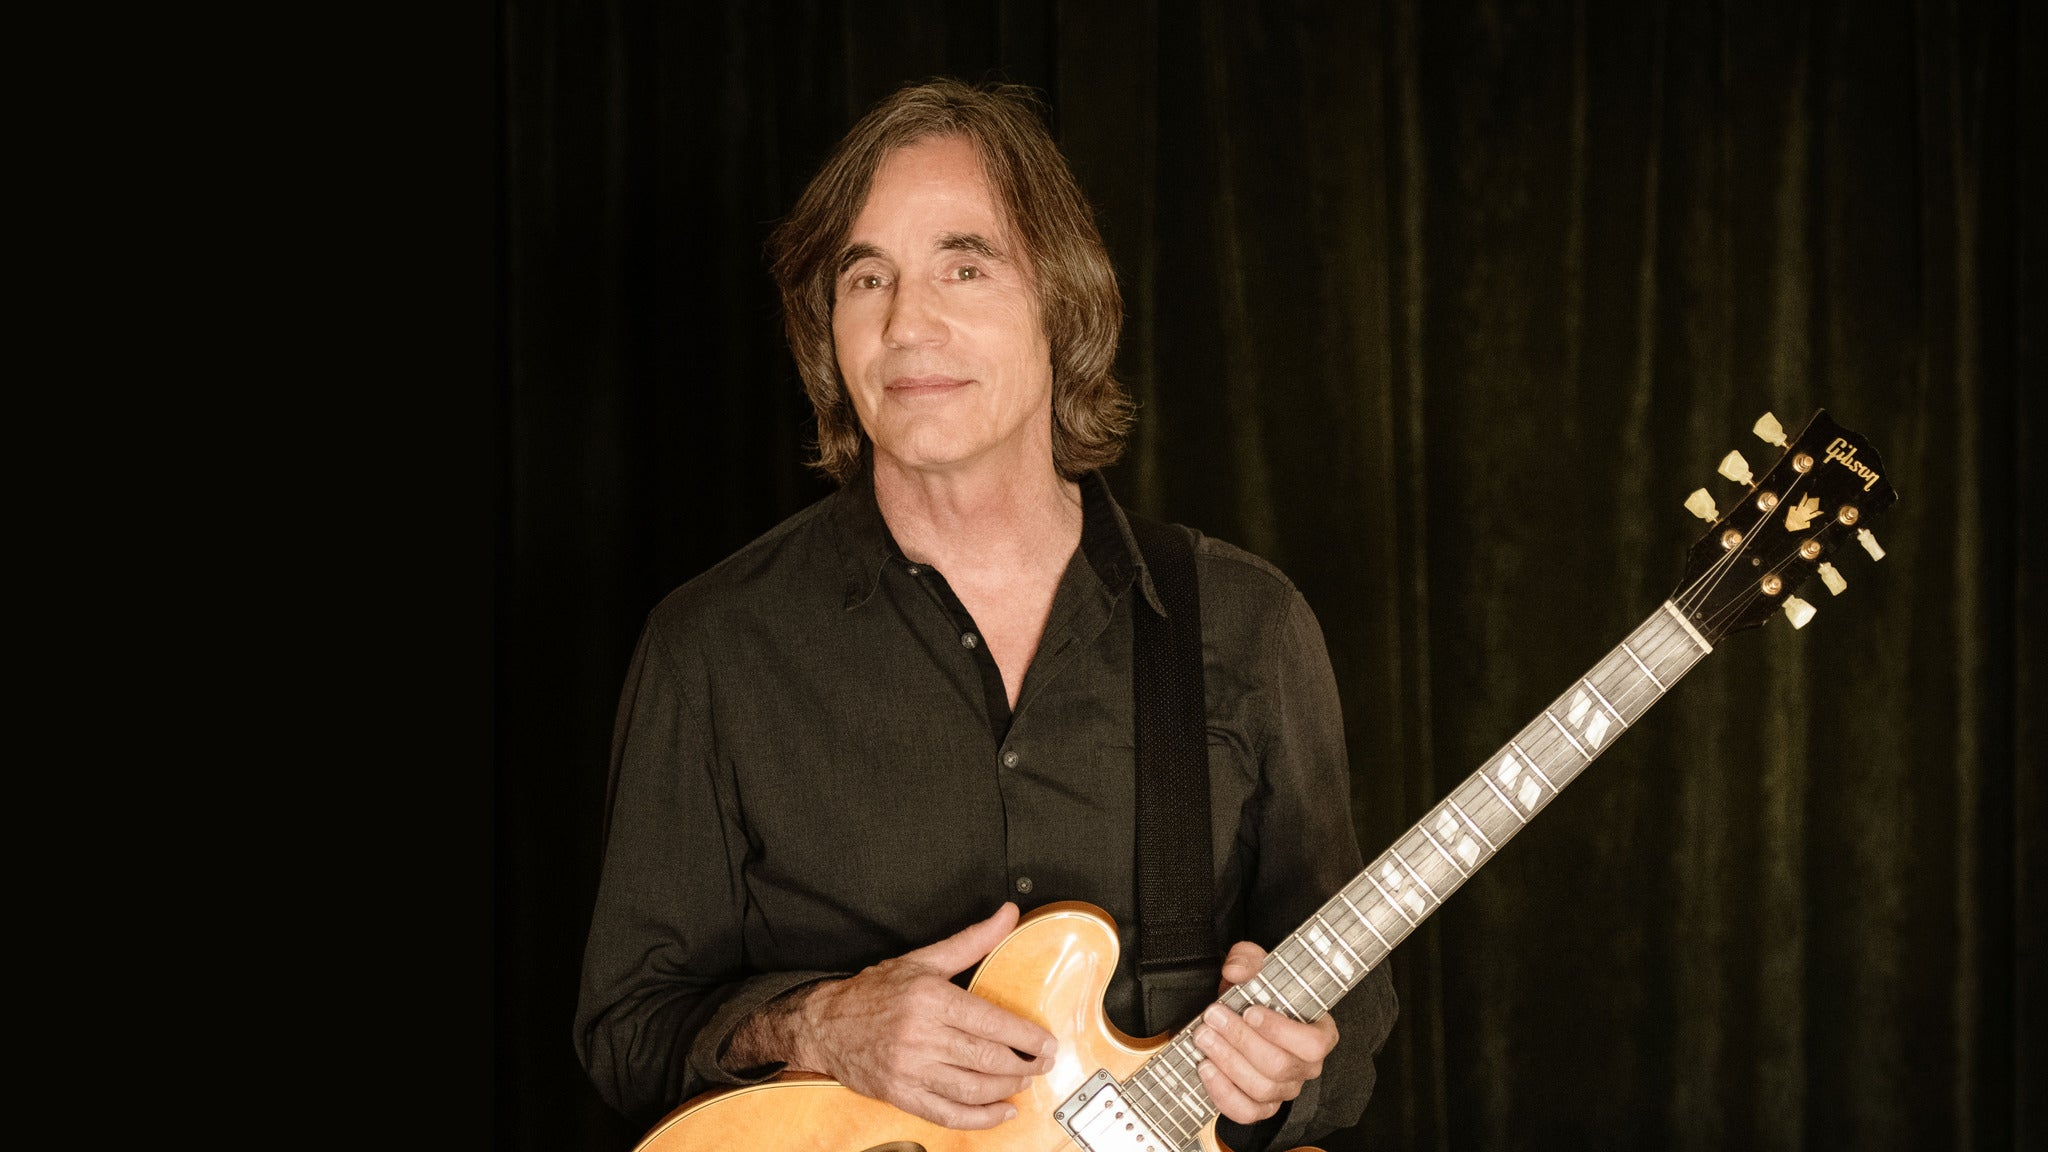 Jackson Browne at Wente Vineyards at Wente Vineyards